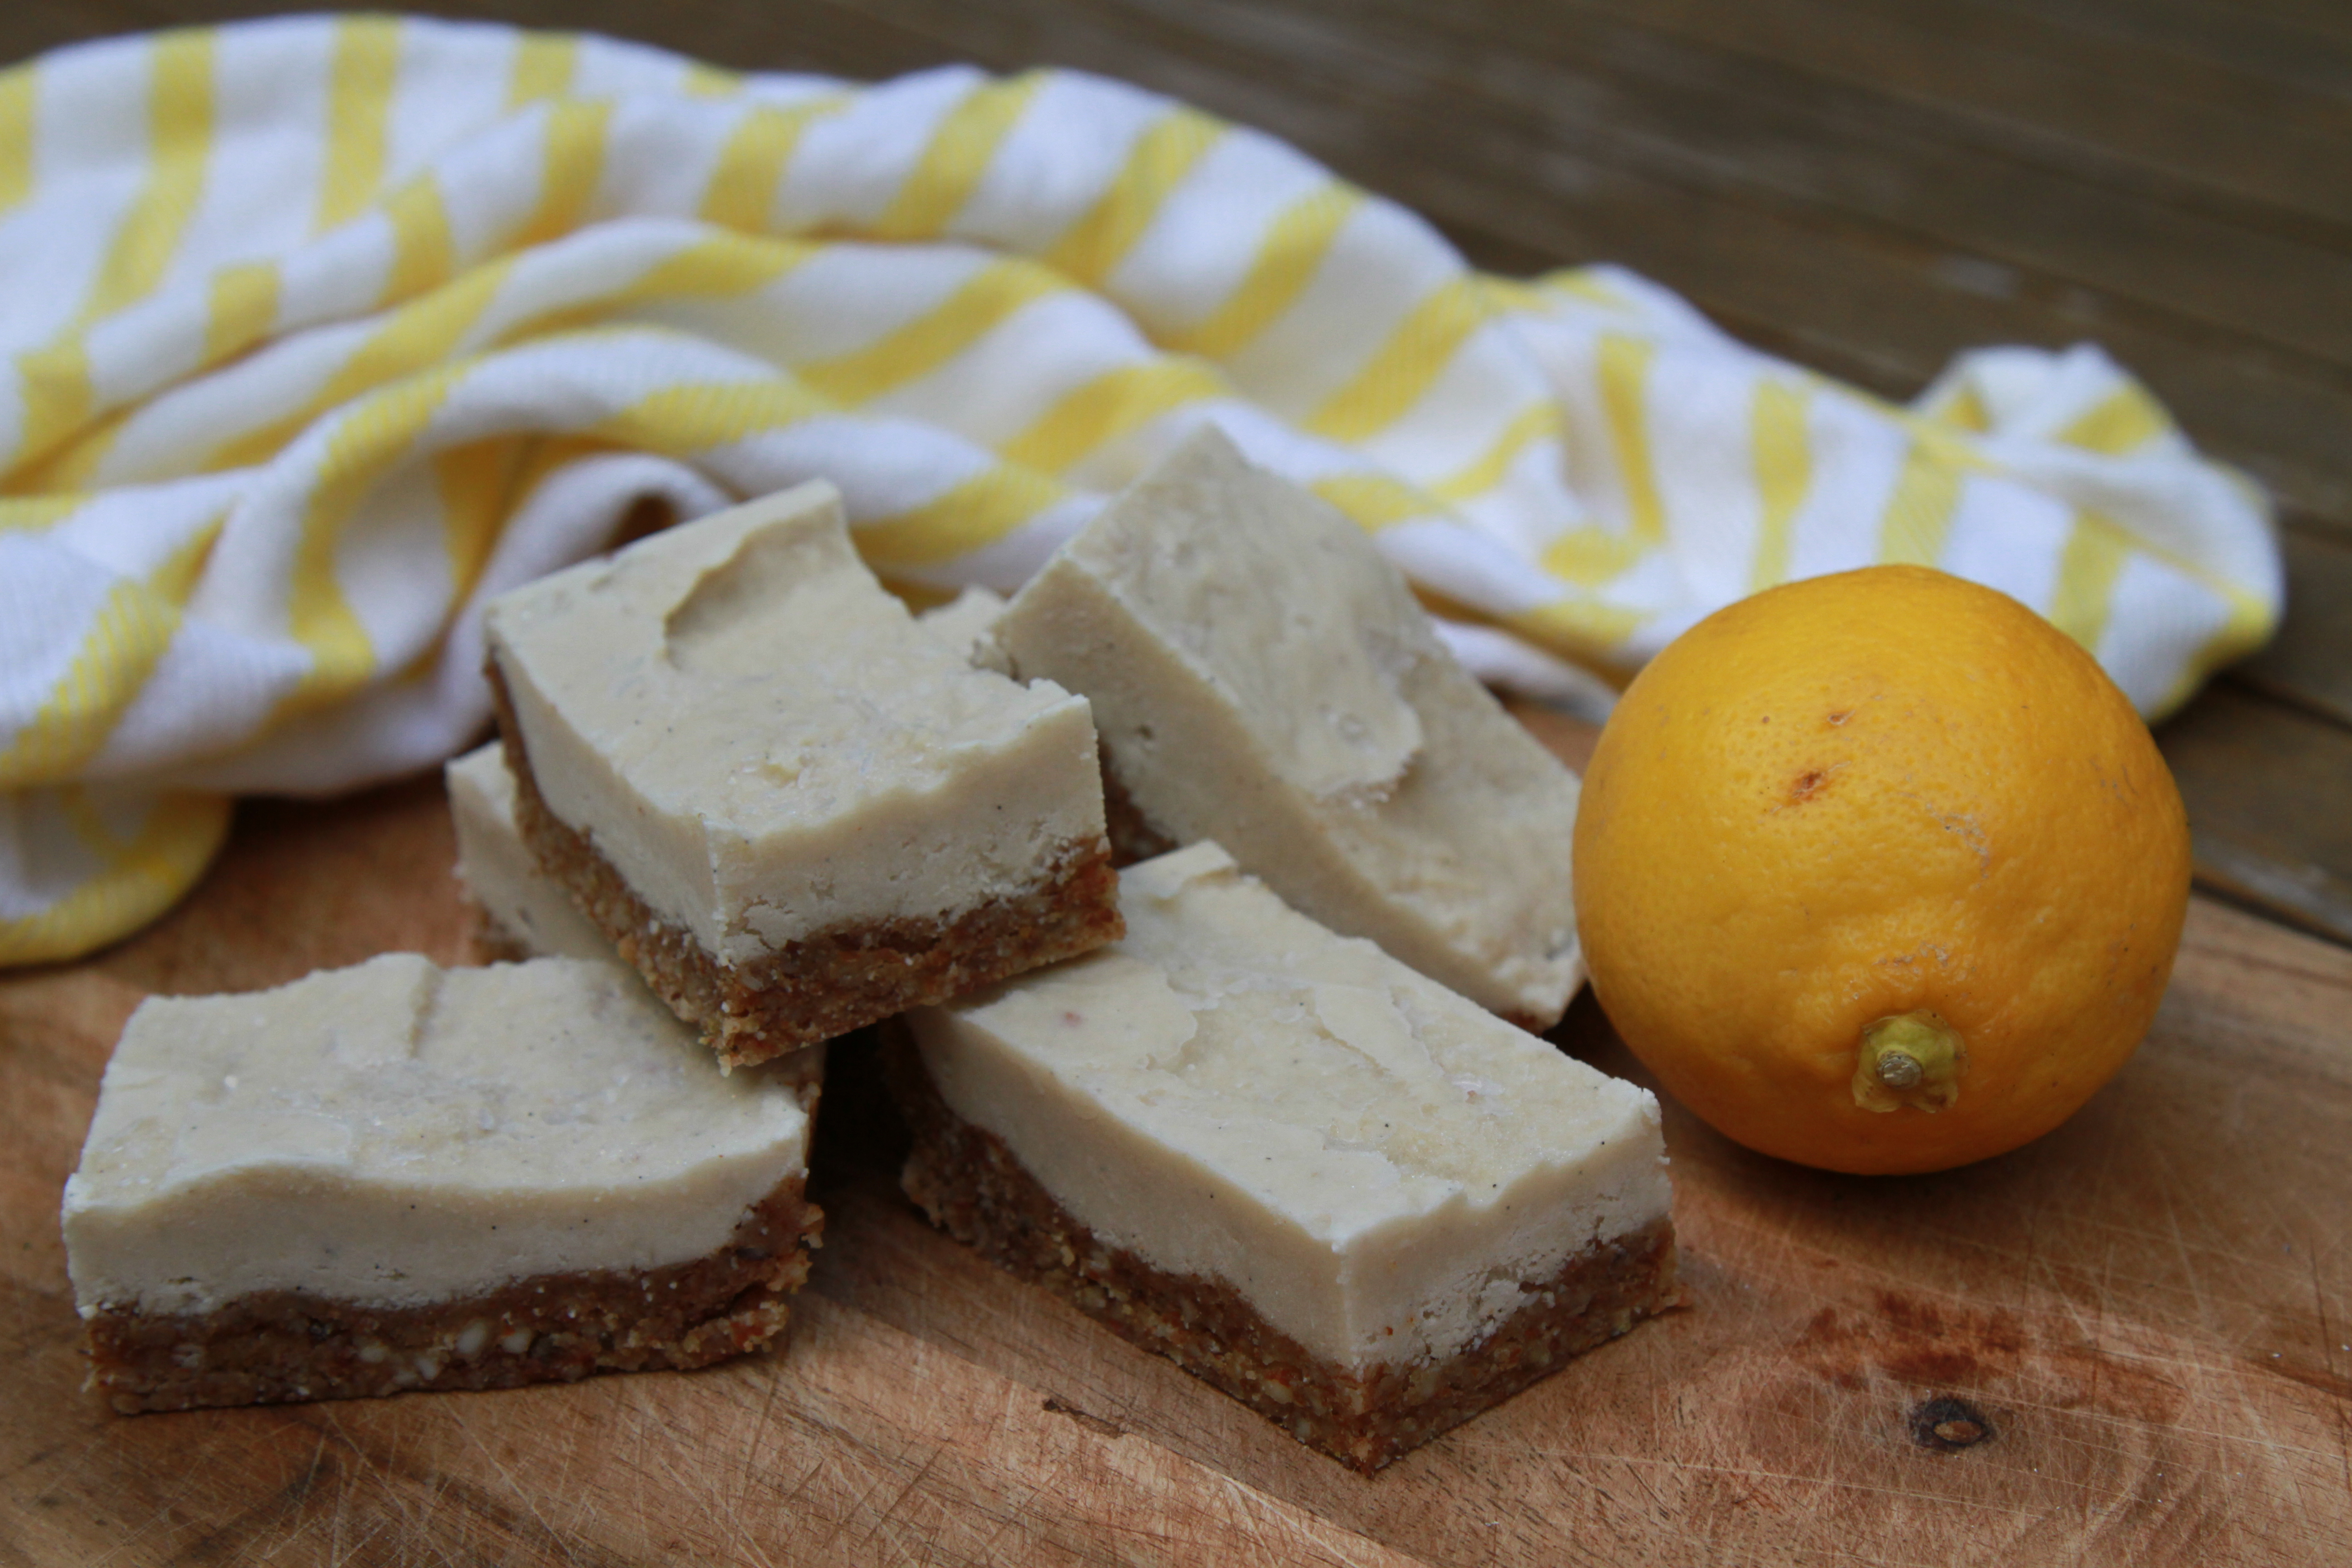 Lemon & Cashew Slice